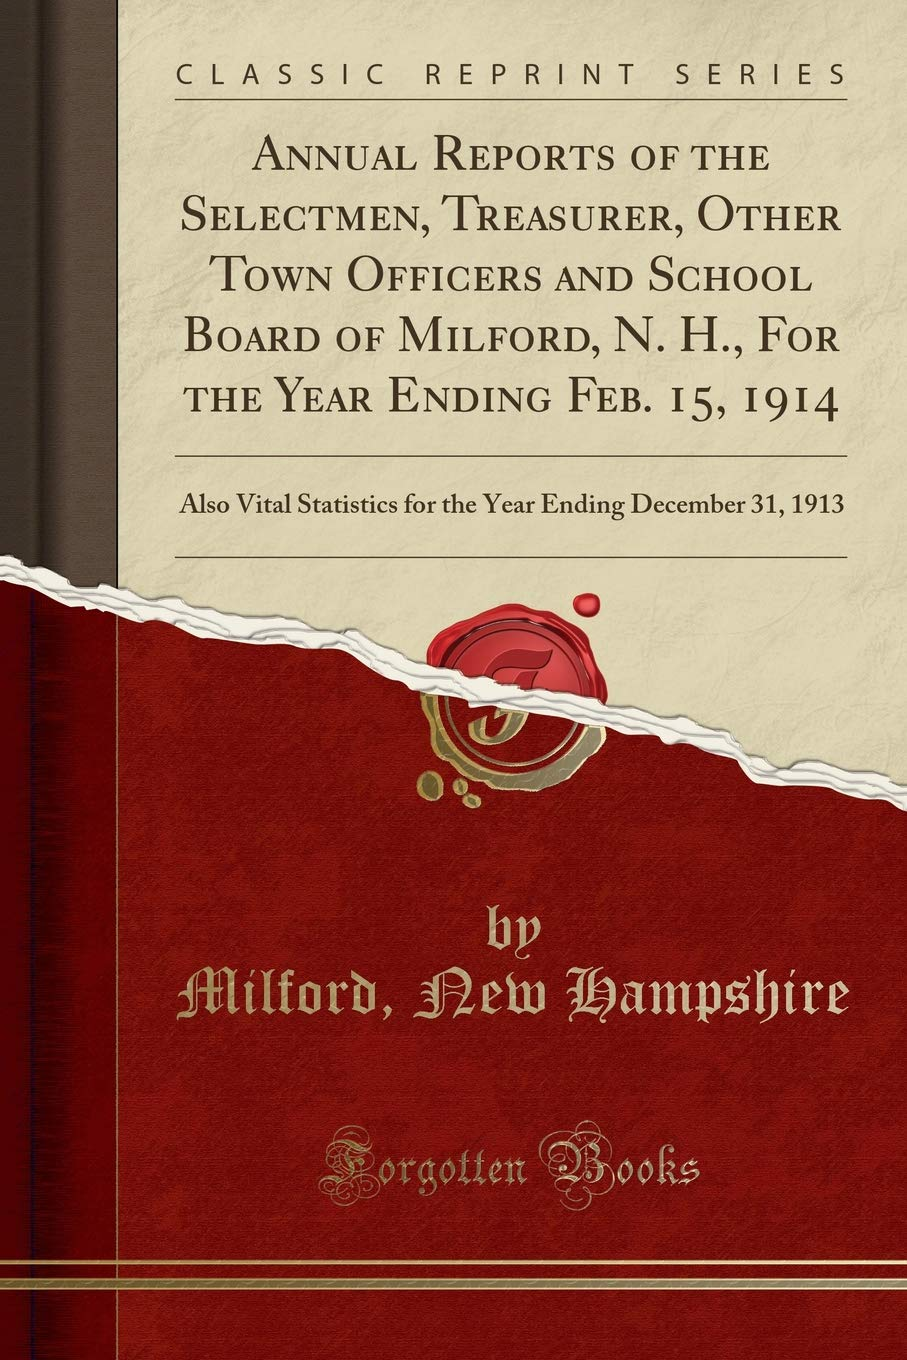 Download Annual Reports of the Selectmen, Treasurer, Other Town Officers and School Board of Milford, N. H., For the Year Ending Feb. 15, 1914: Also Vital ... Ending December 31, 1913 (Classic Reprint) pdf epub